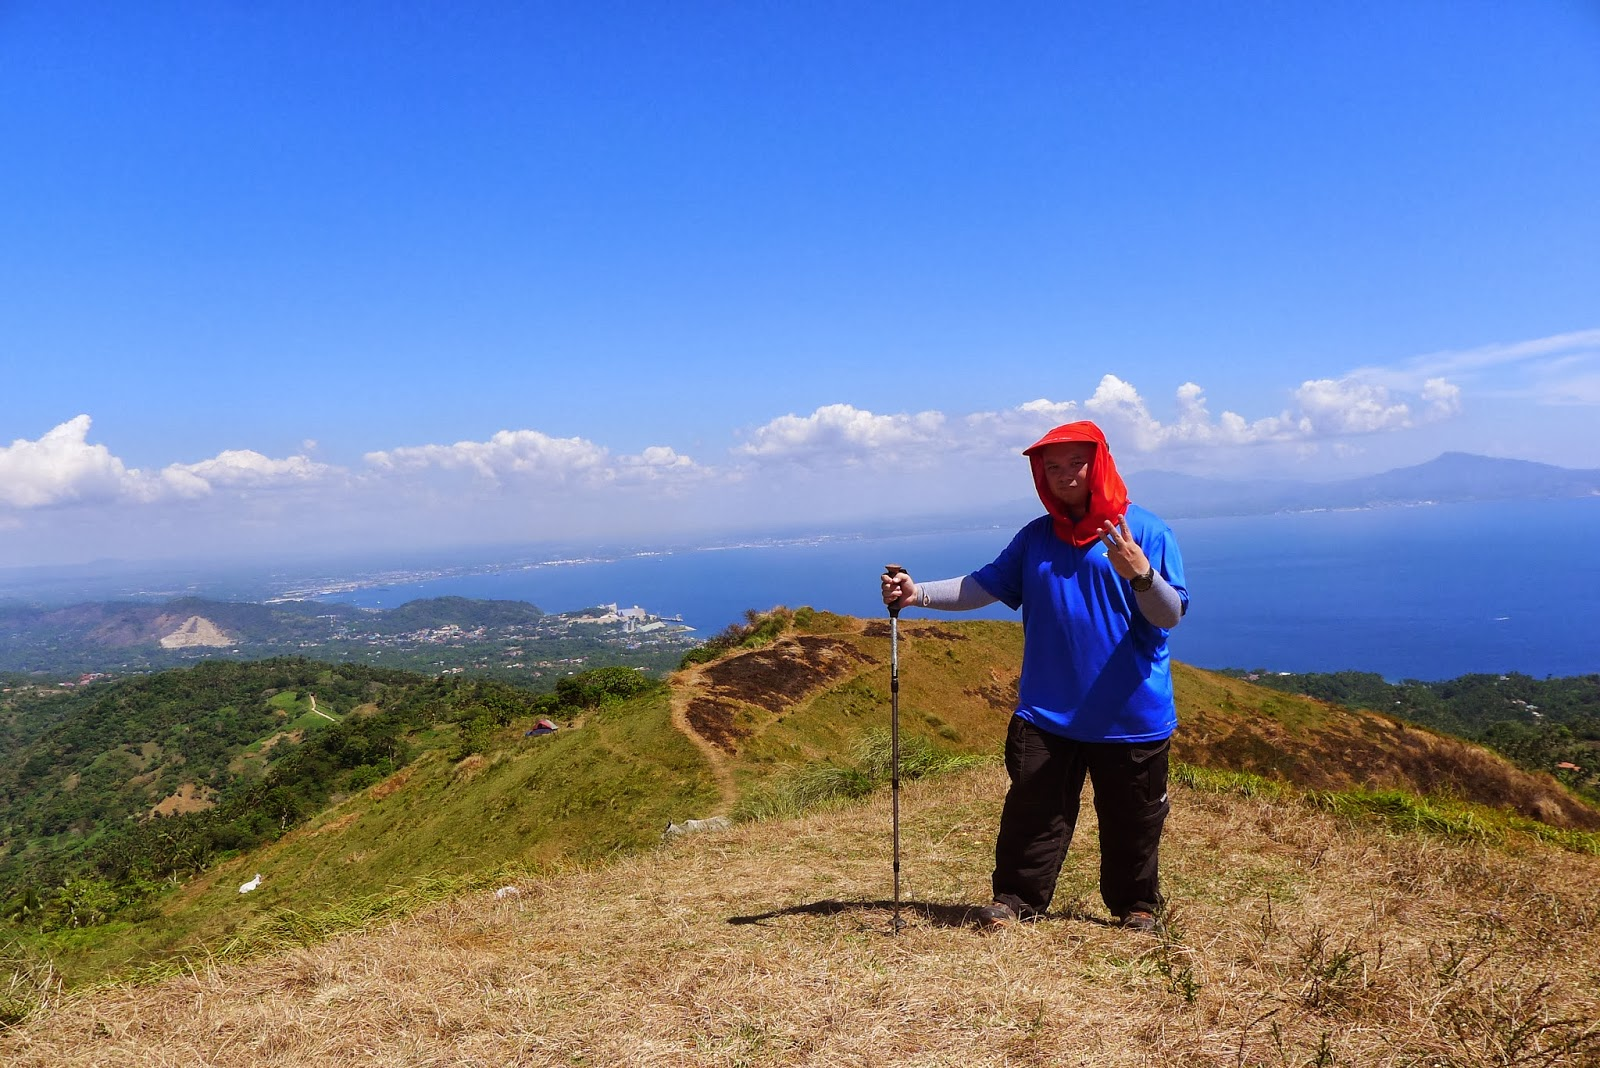 At the summit of Pinagbanderahan, Gulugod Baboy's highest peak